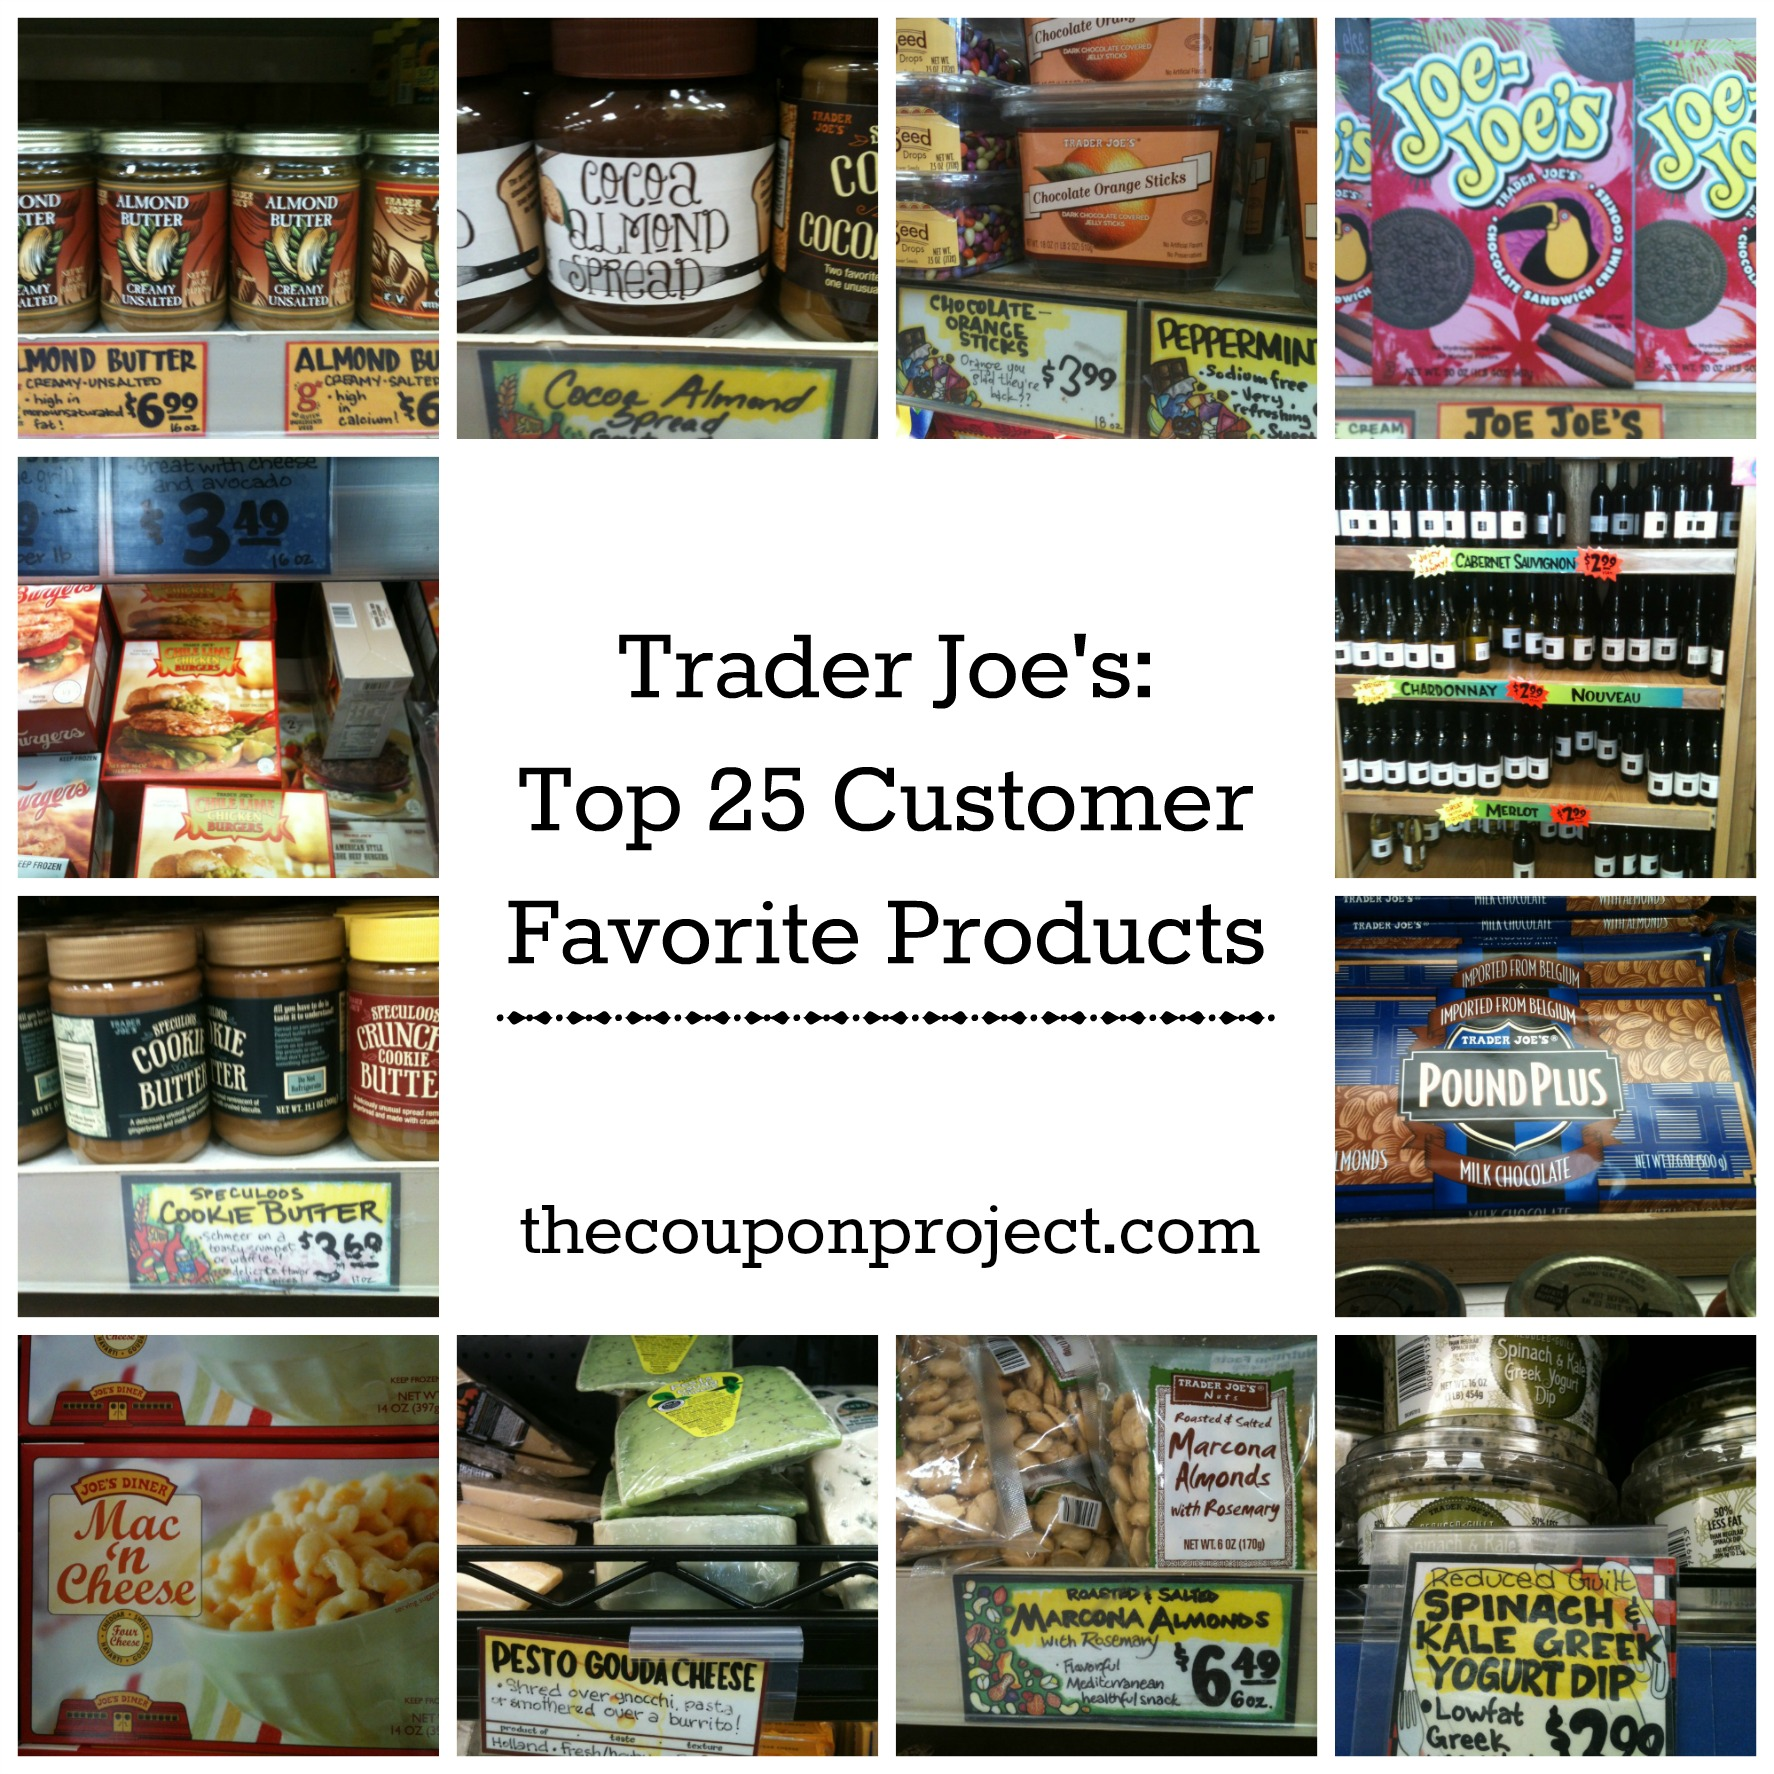 Products: Trader Joe's Top 25 Customer Favorite Products